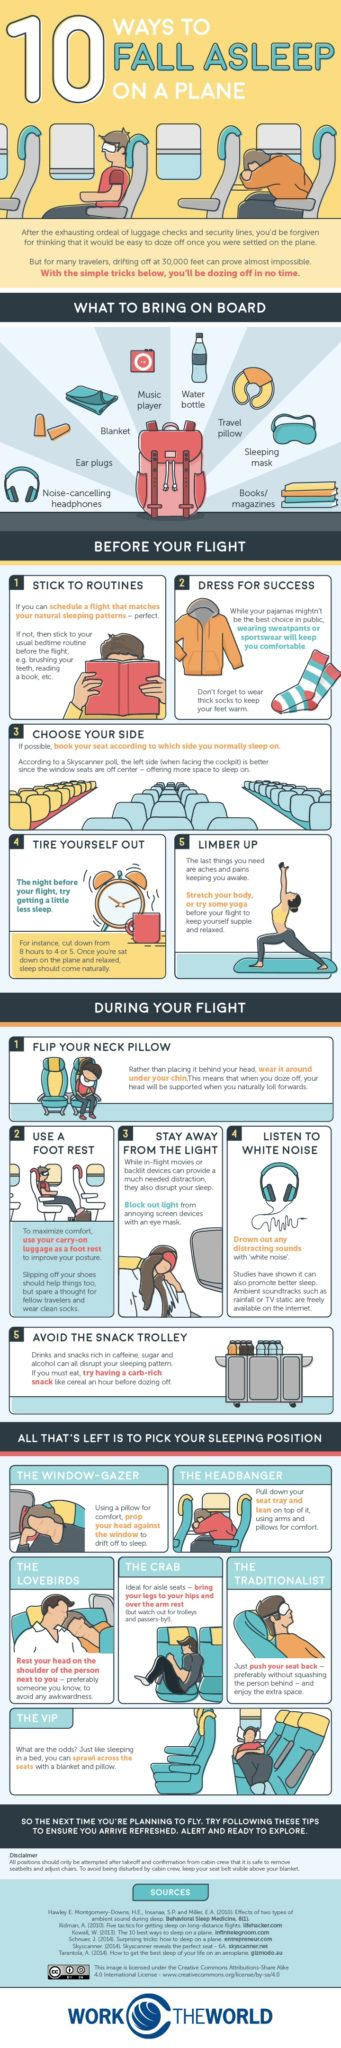 10 Ways to sleep better on the airplane